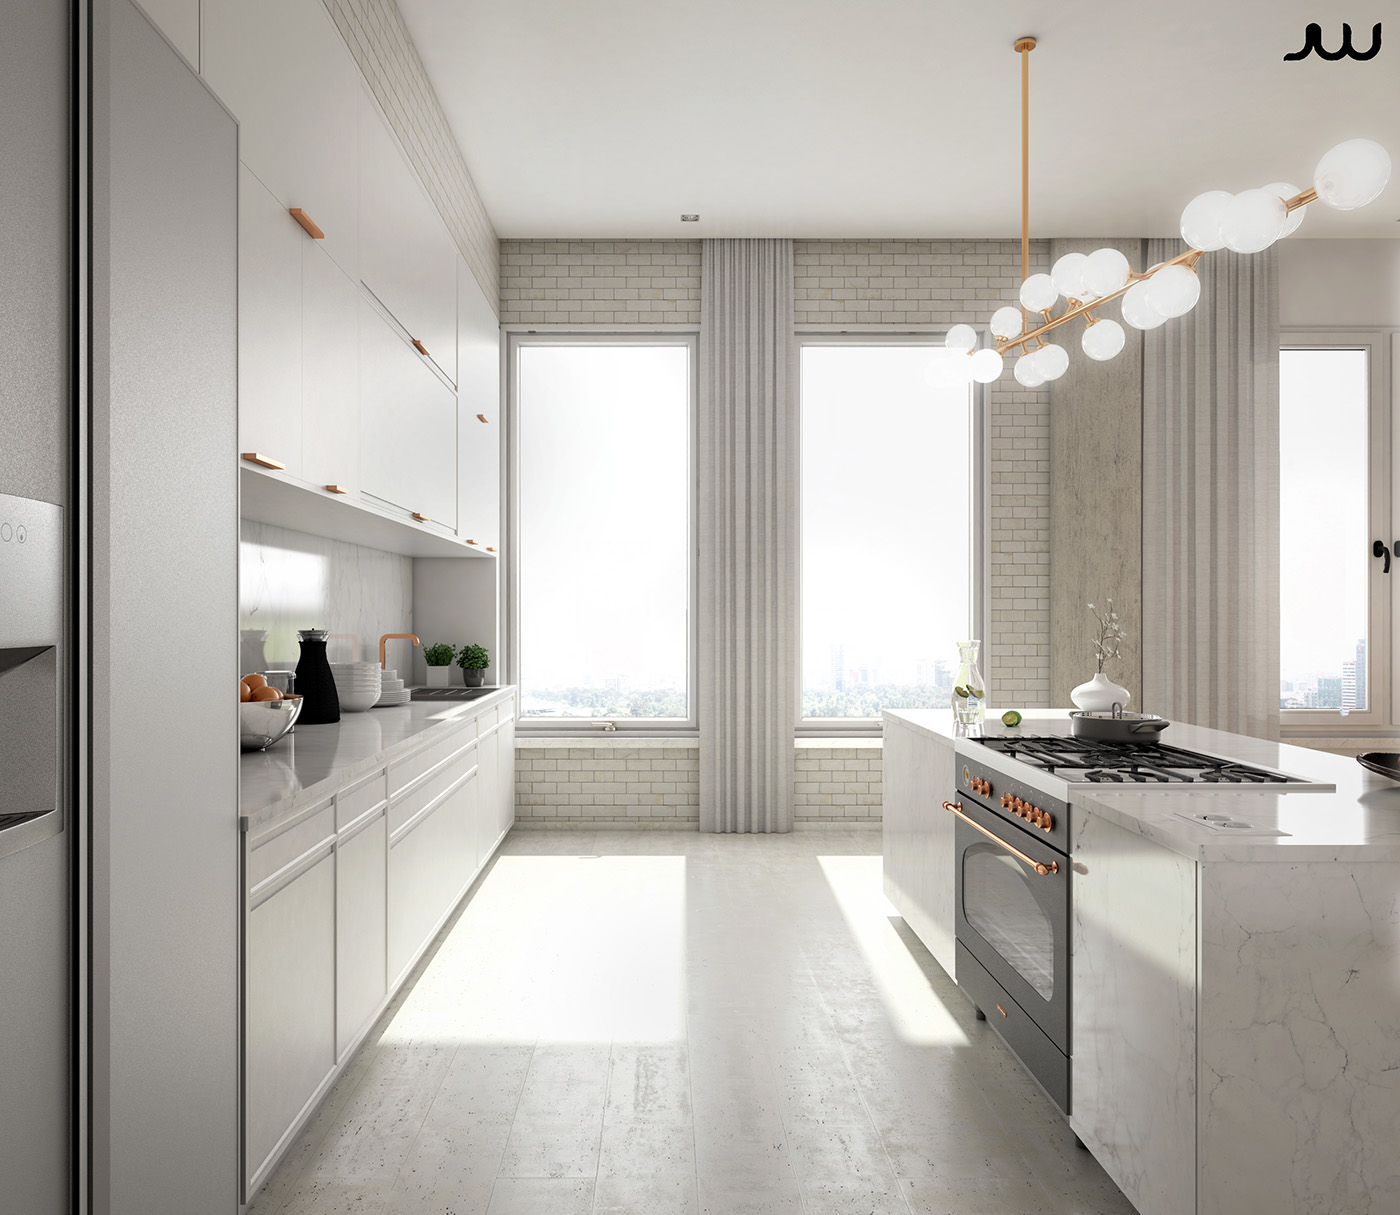 Apartments New York: New York Apartment (CGI) On Behance